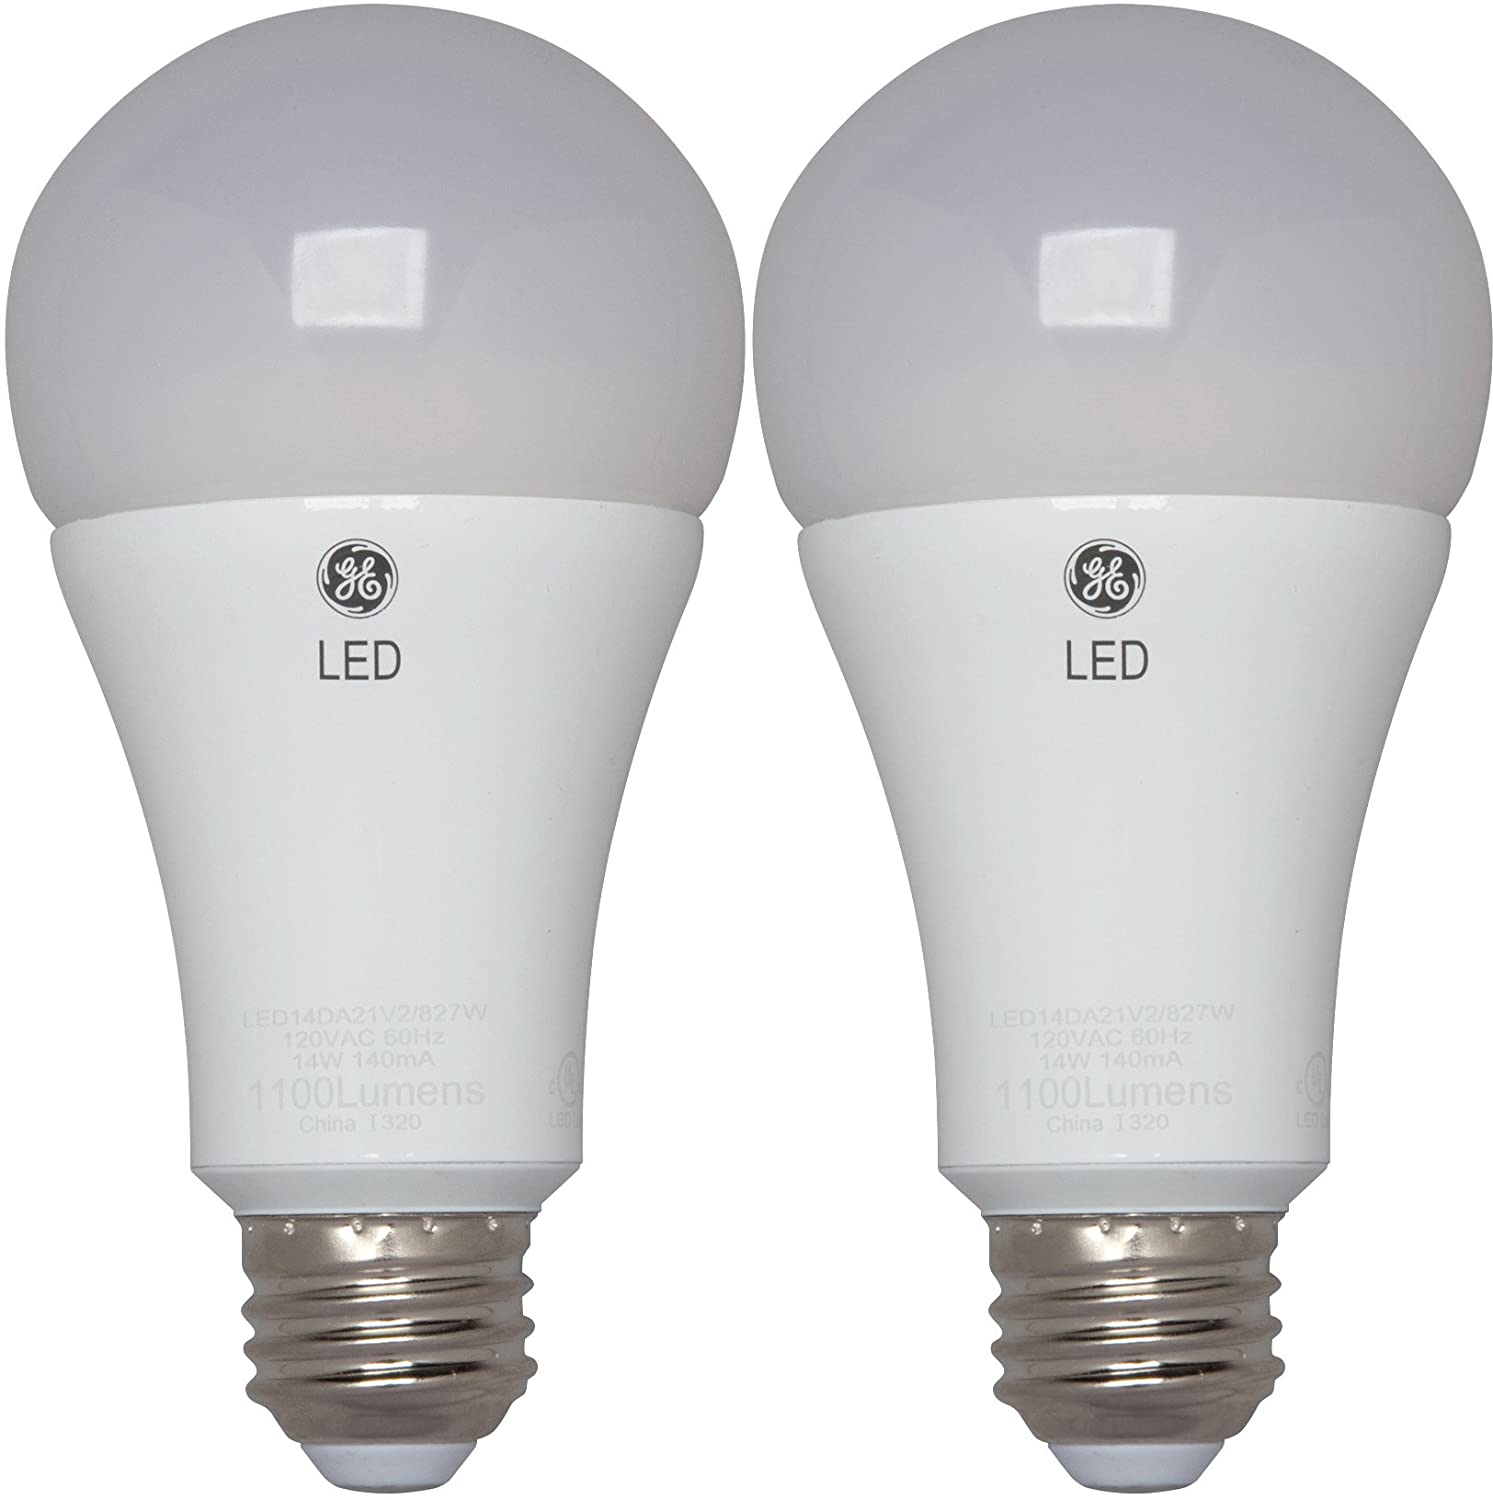 GE Lighting 30915 LED 17-Watt (100-watt replacement) 1600-Lumen A21 Light Bulb with Medium Base, 2-Pack